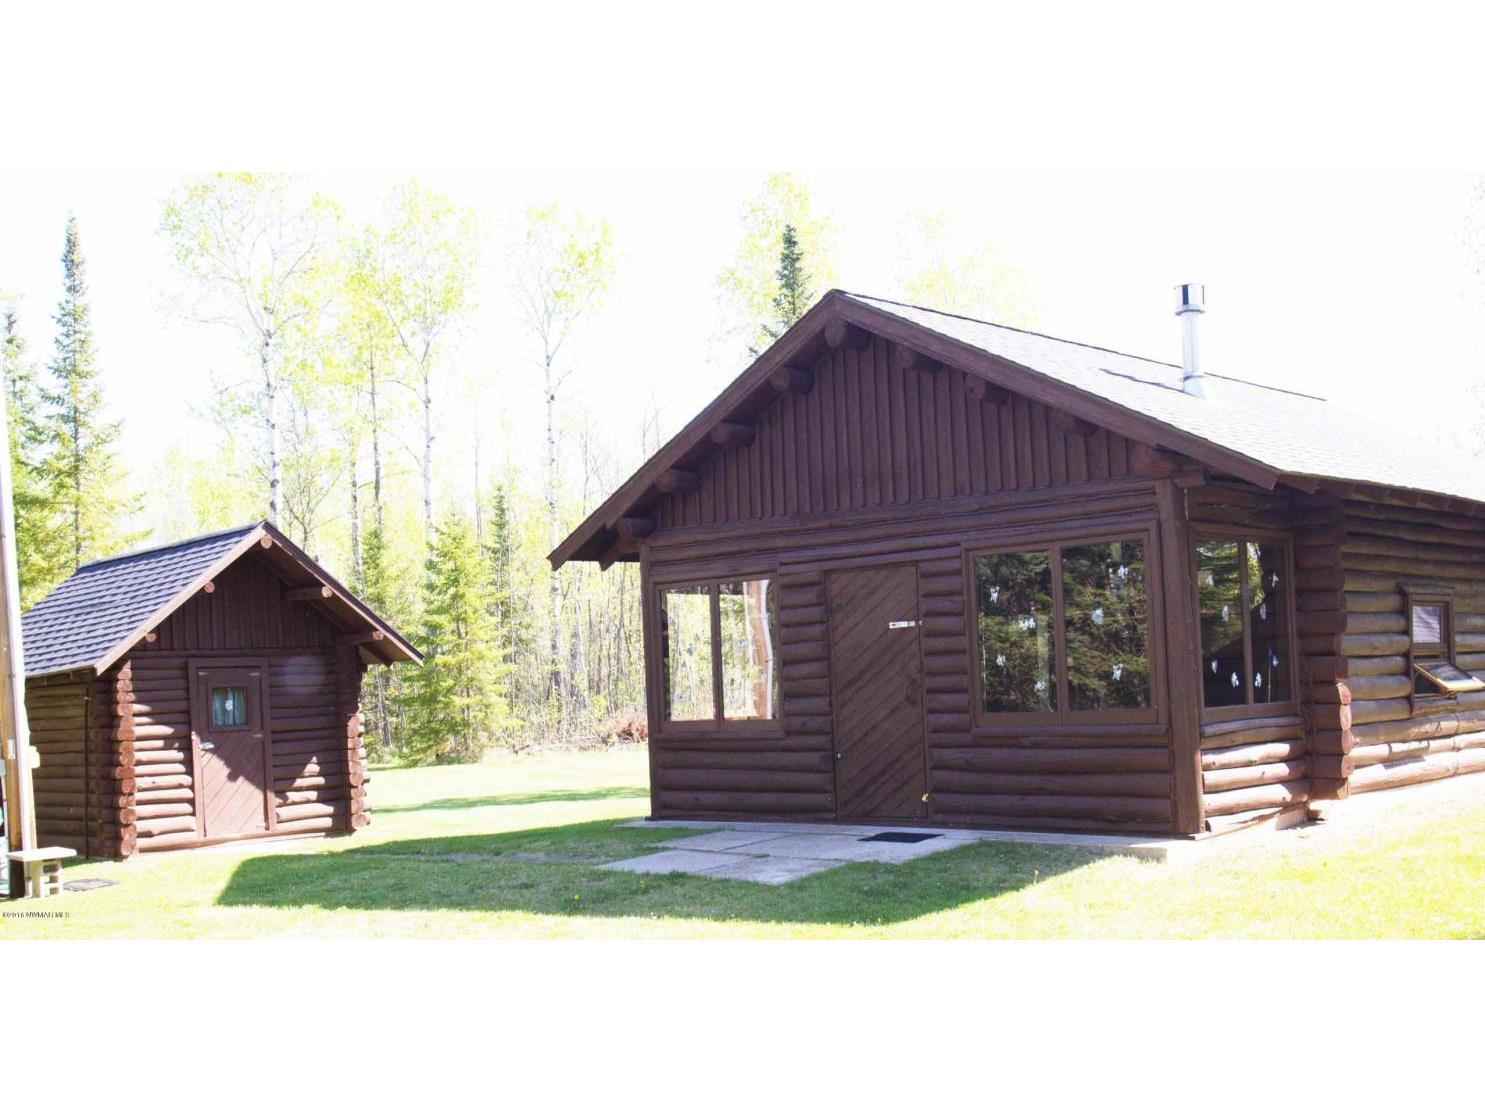 cabin and bunkhouse close up